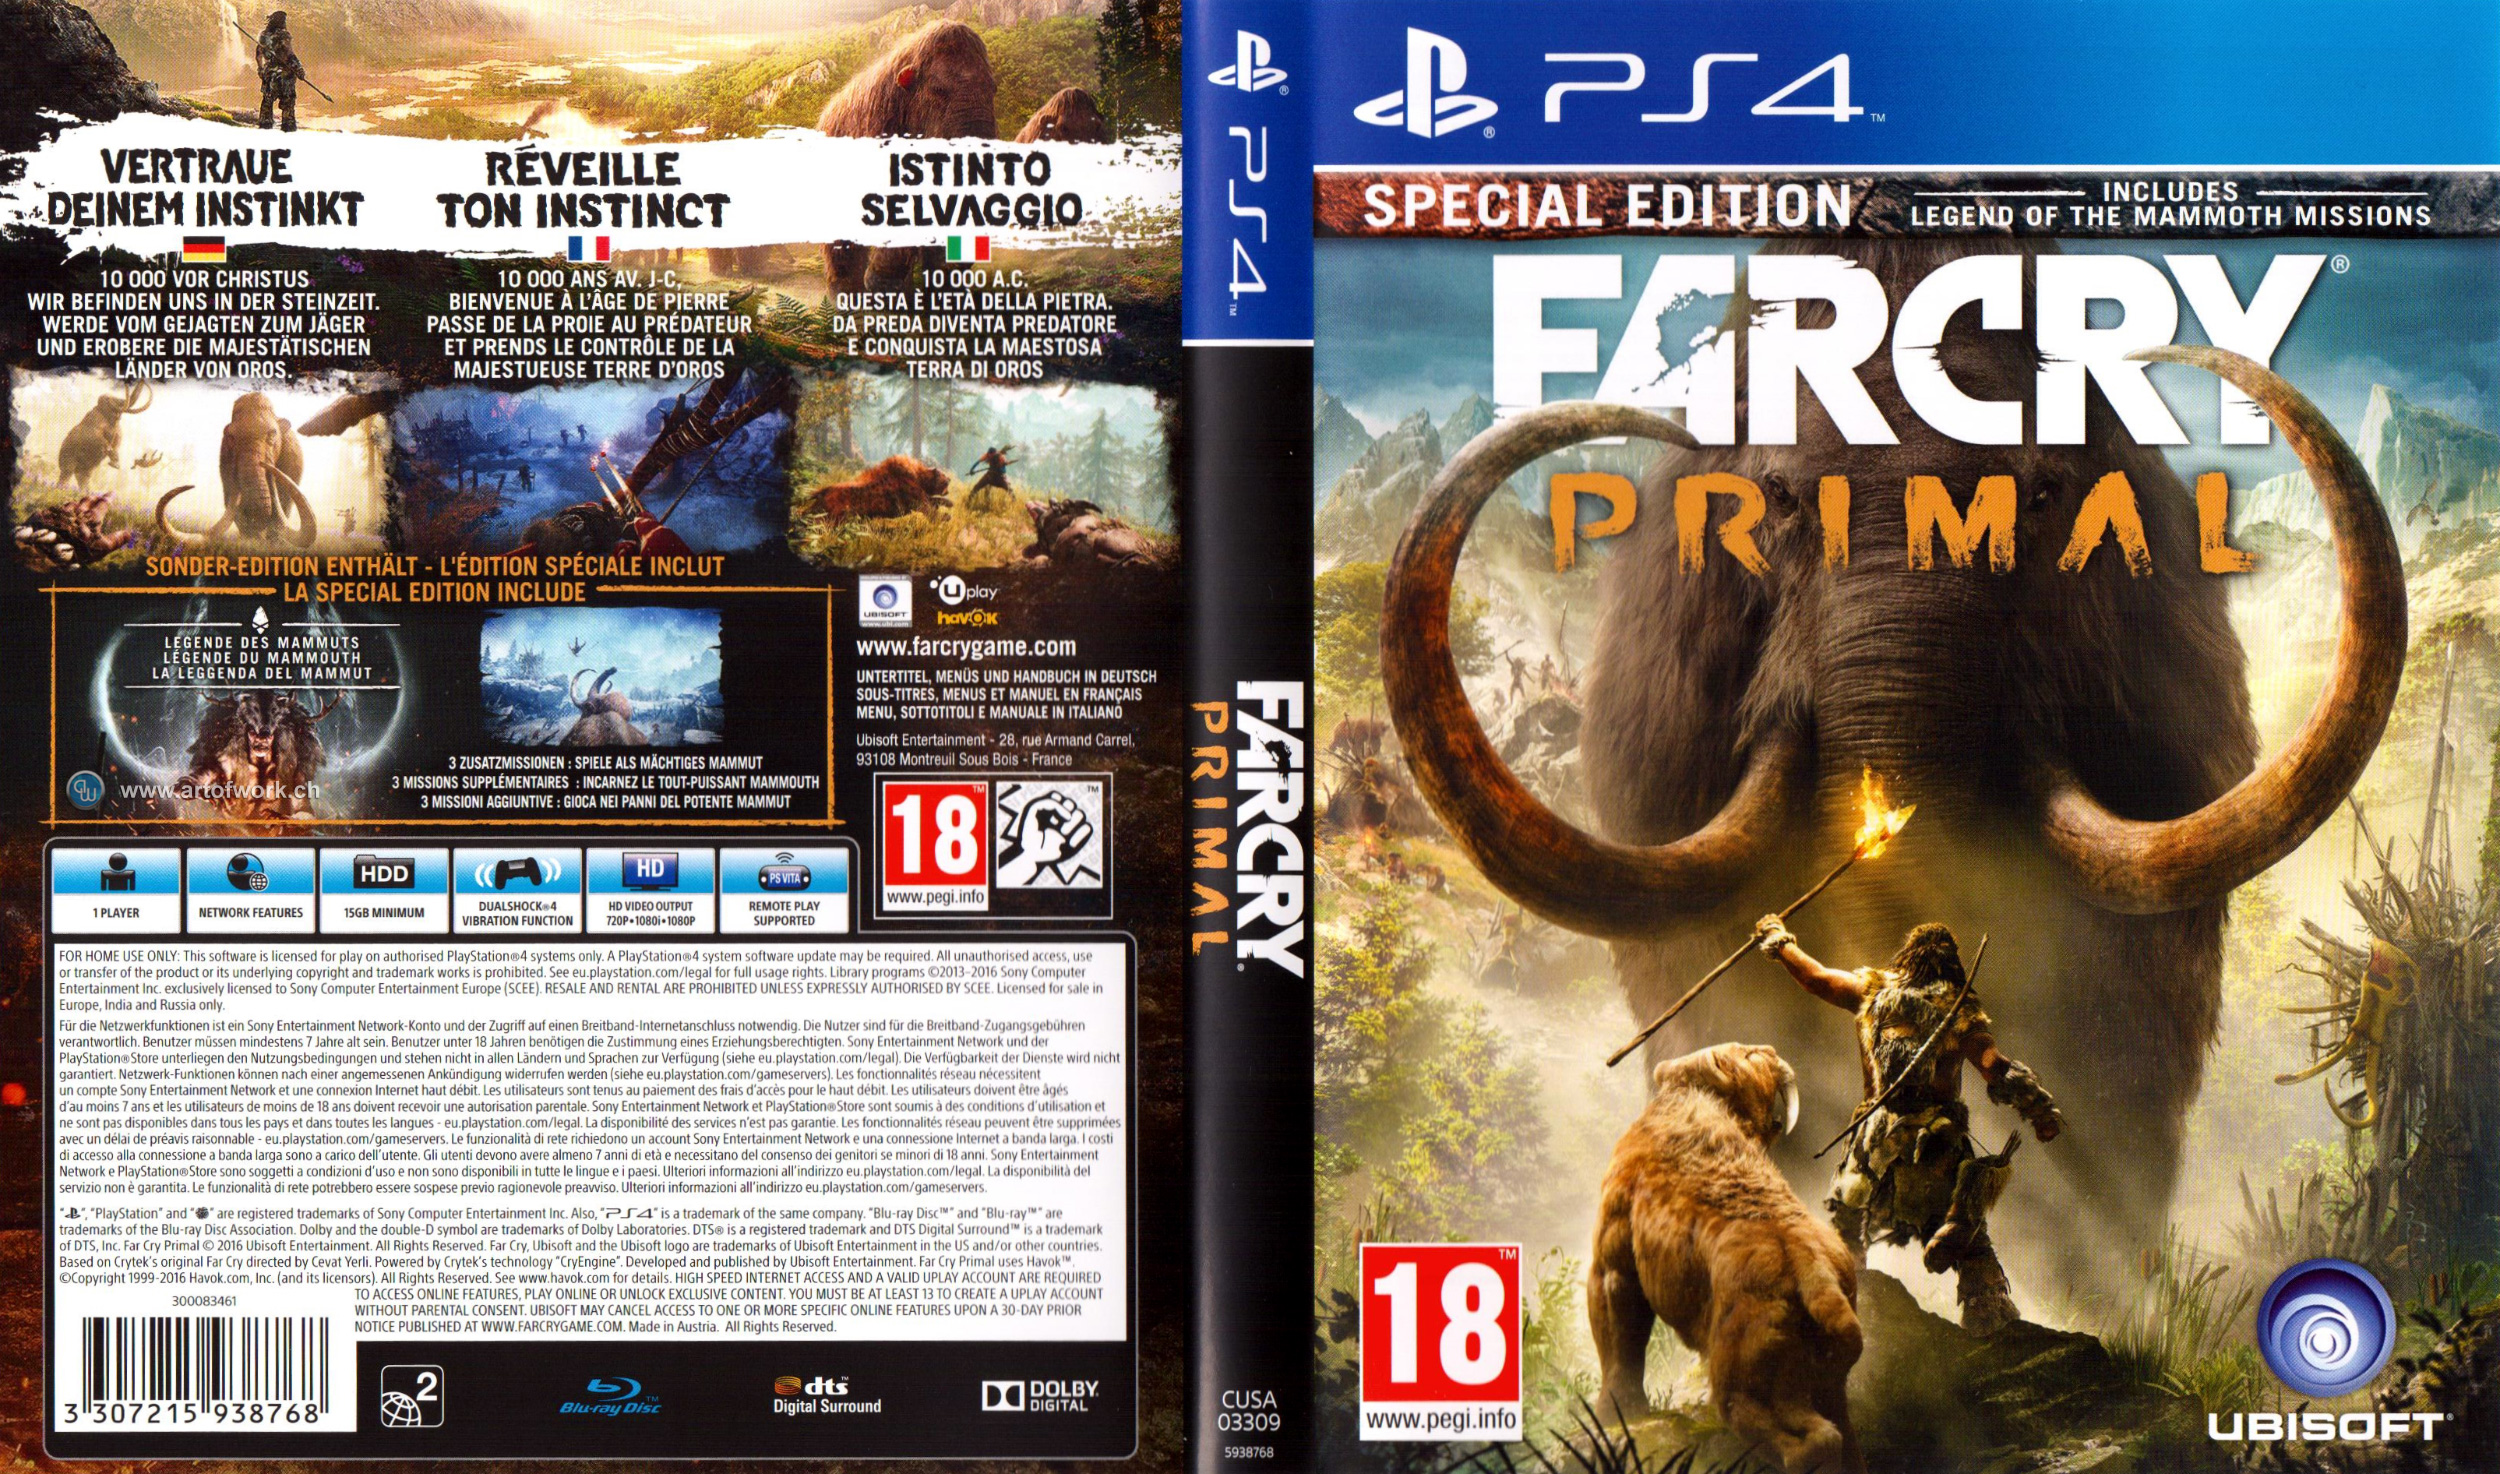 Playstation 4 Covers - This is for the Players